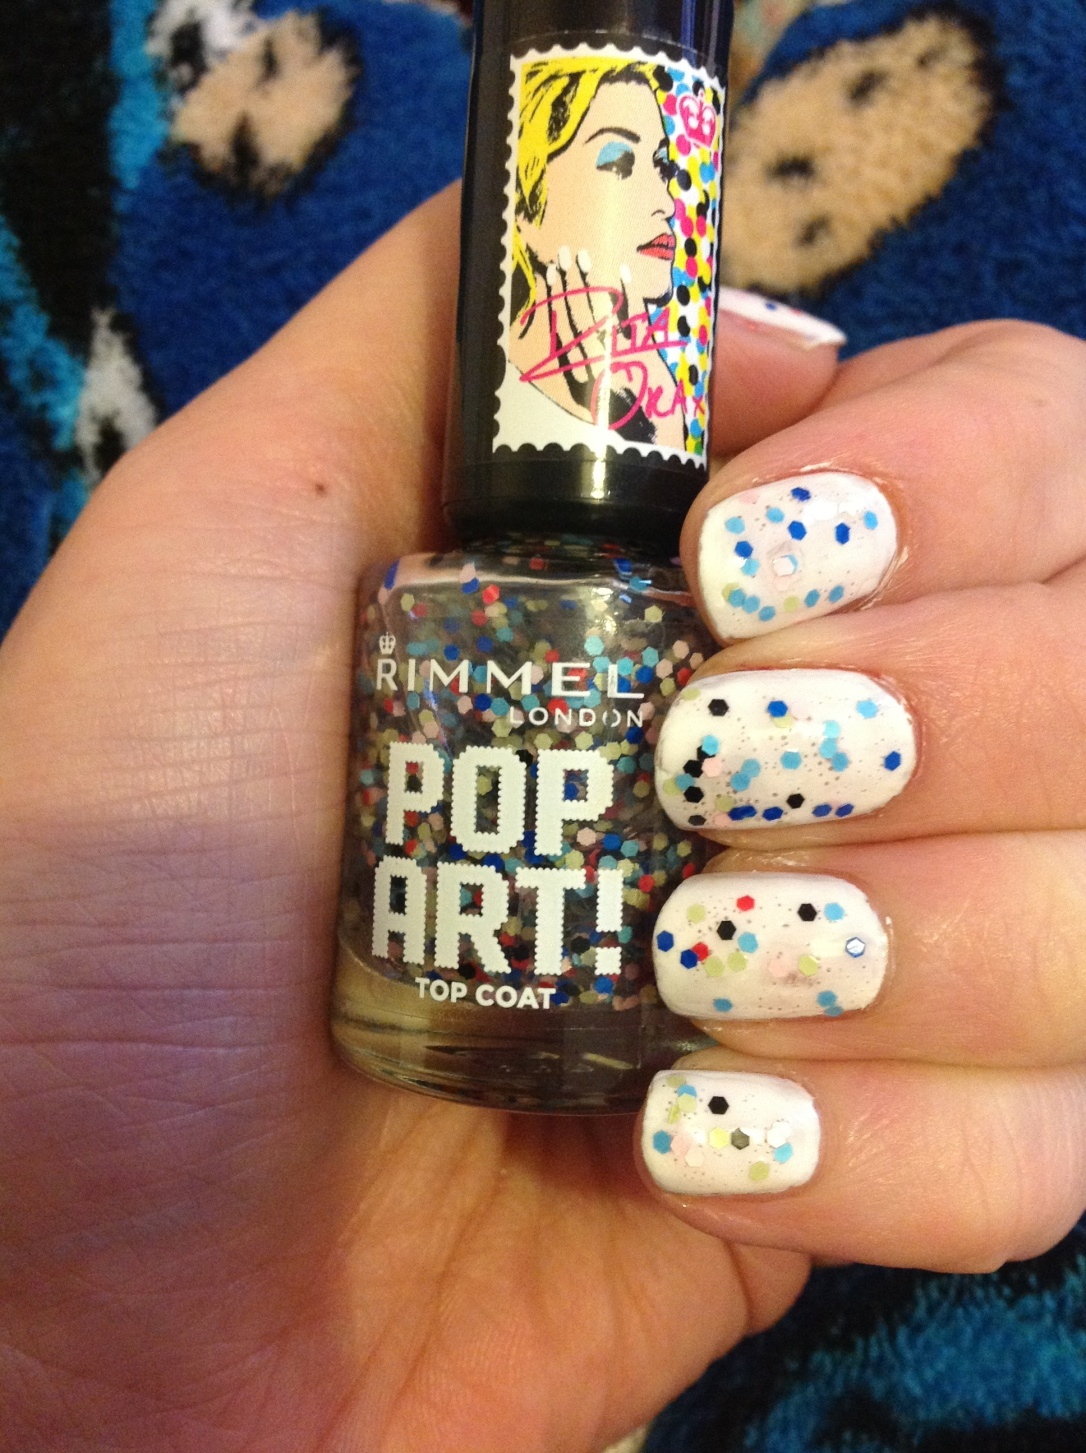 Typical blogger notd